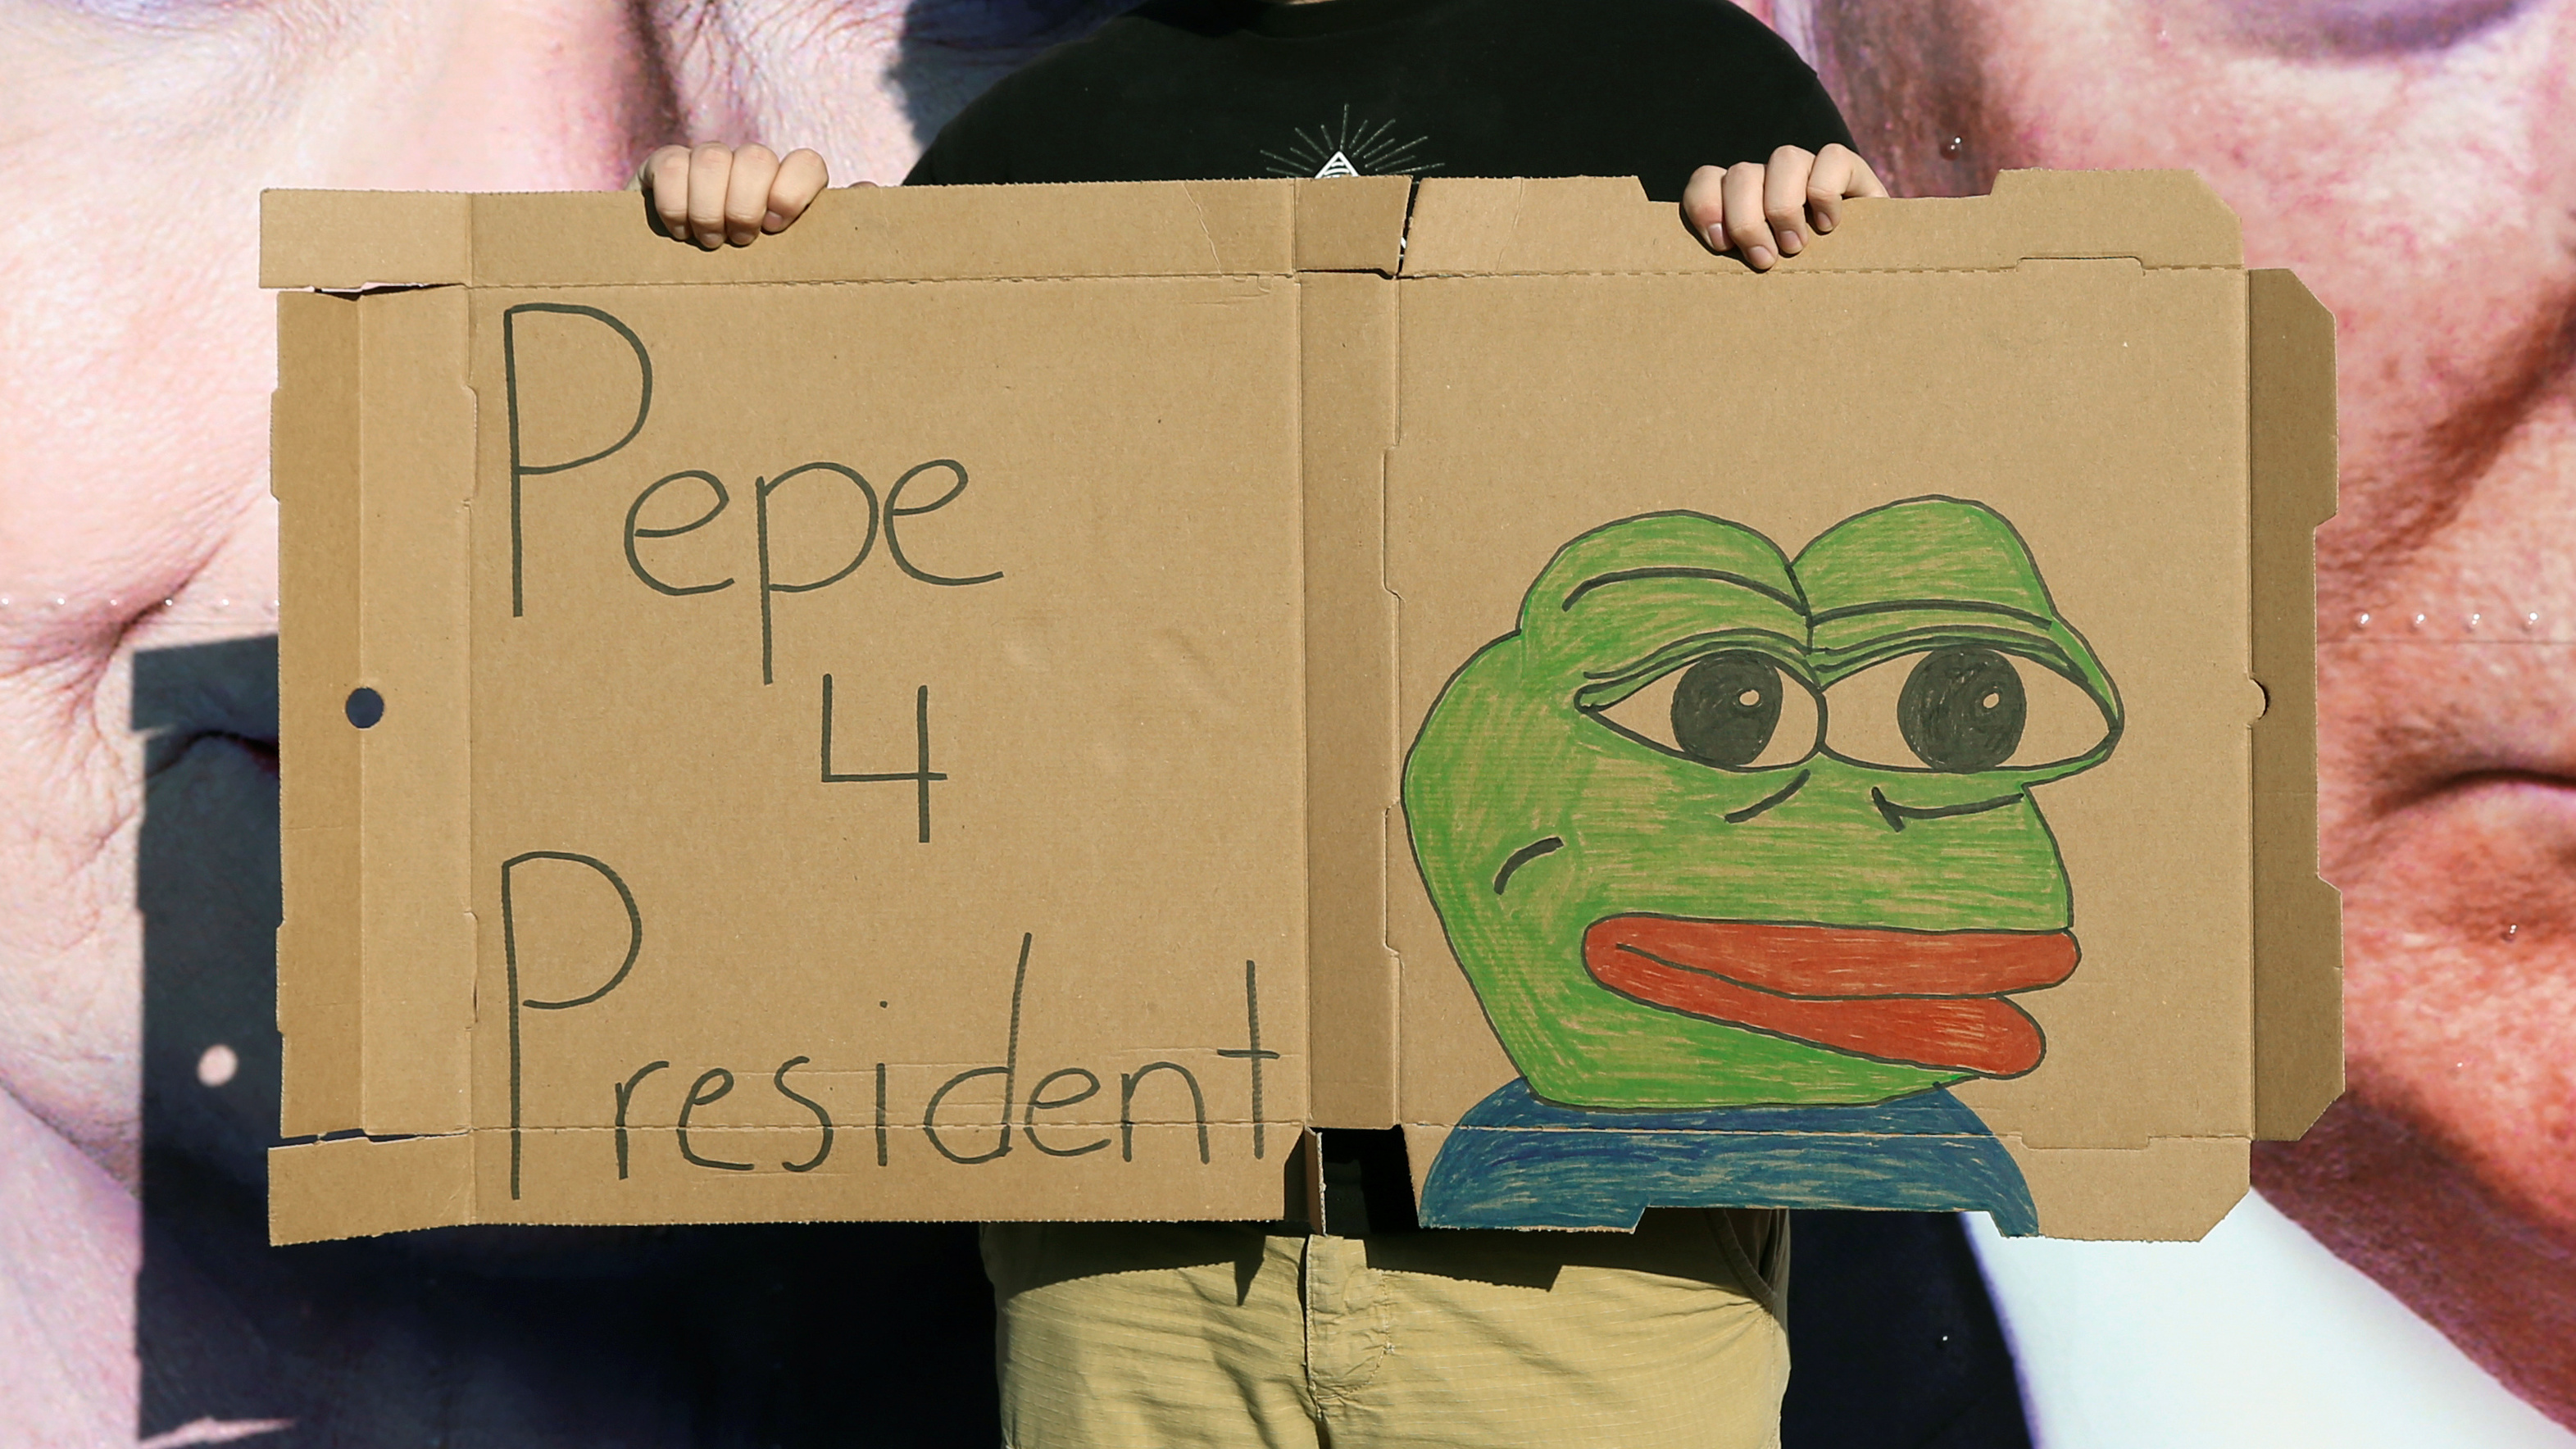 I Guess We Need To Talk About Pepe The Frog